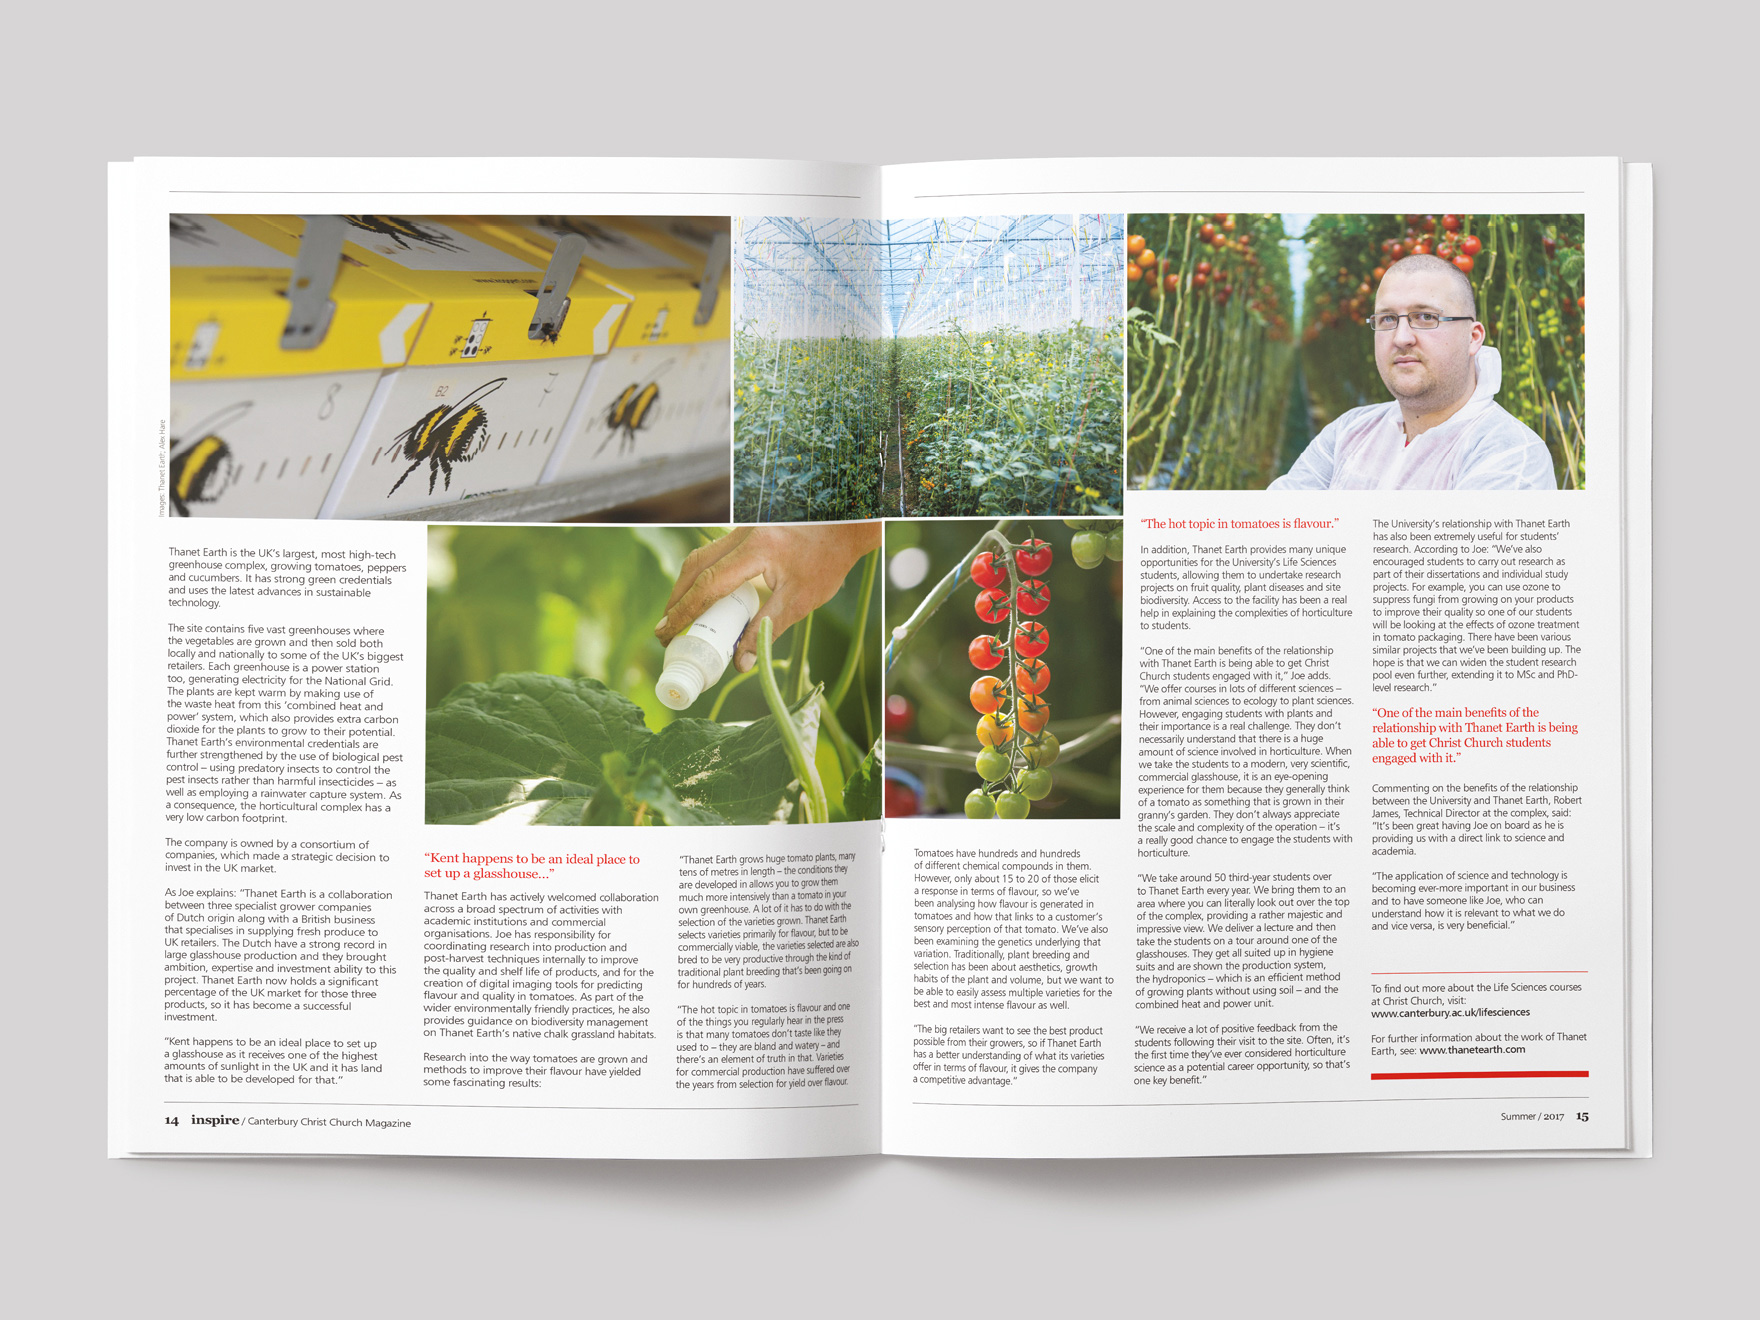 Inside pages from Inspire magazine, showing the pages of a feature on Farming for the Future